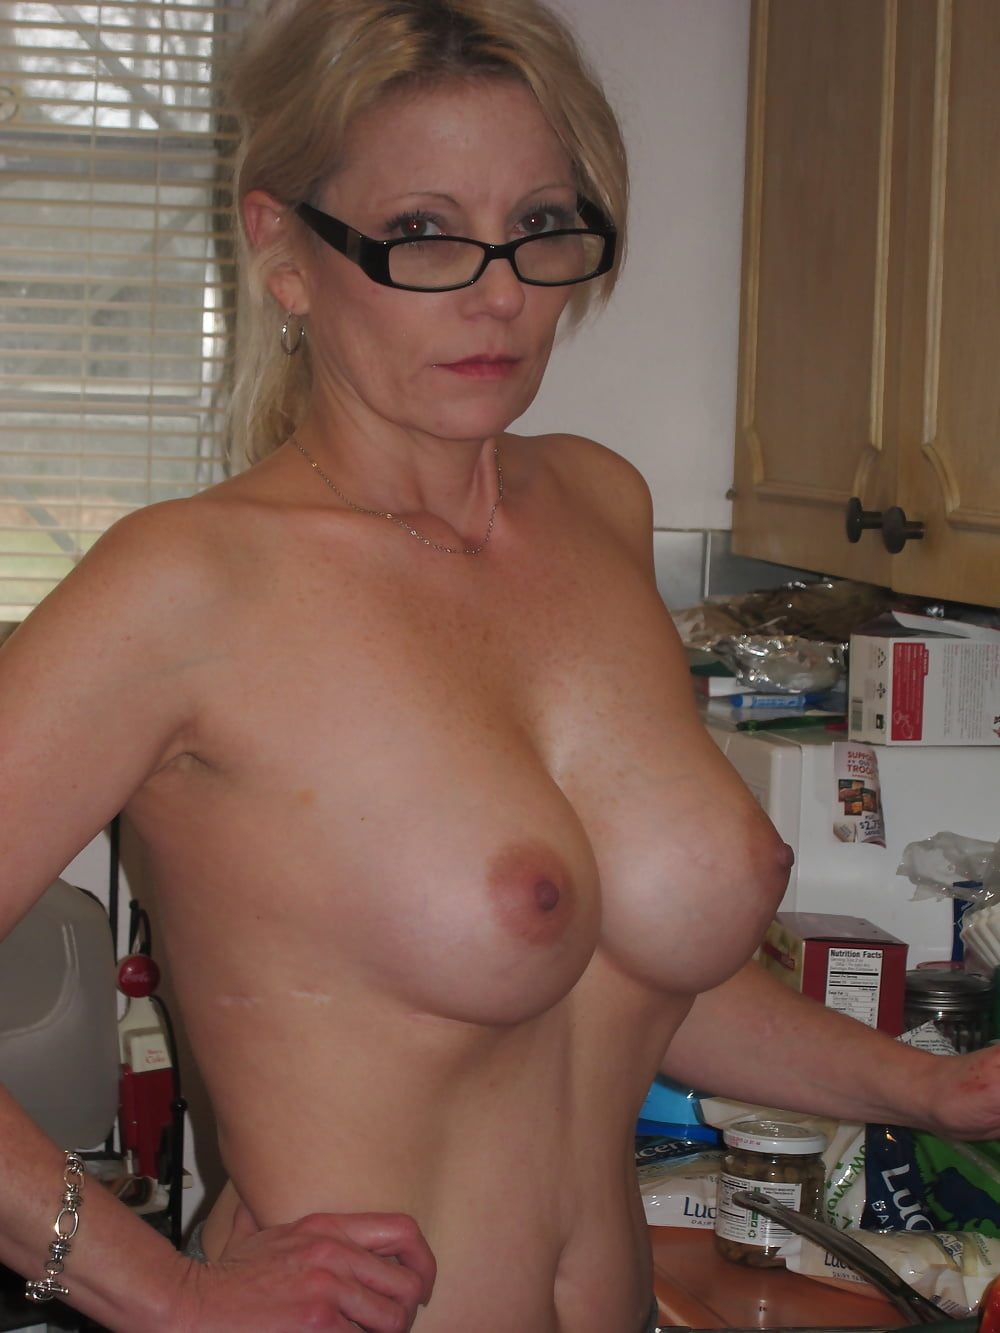 Sexy milf thumbs, bbwsister and brother sex nude pussy images